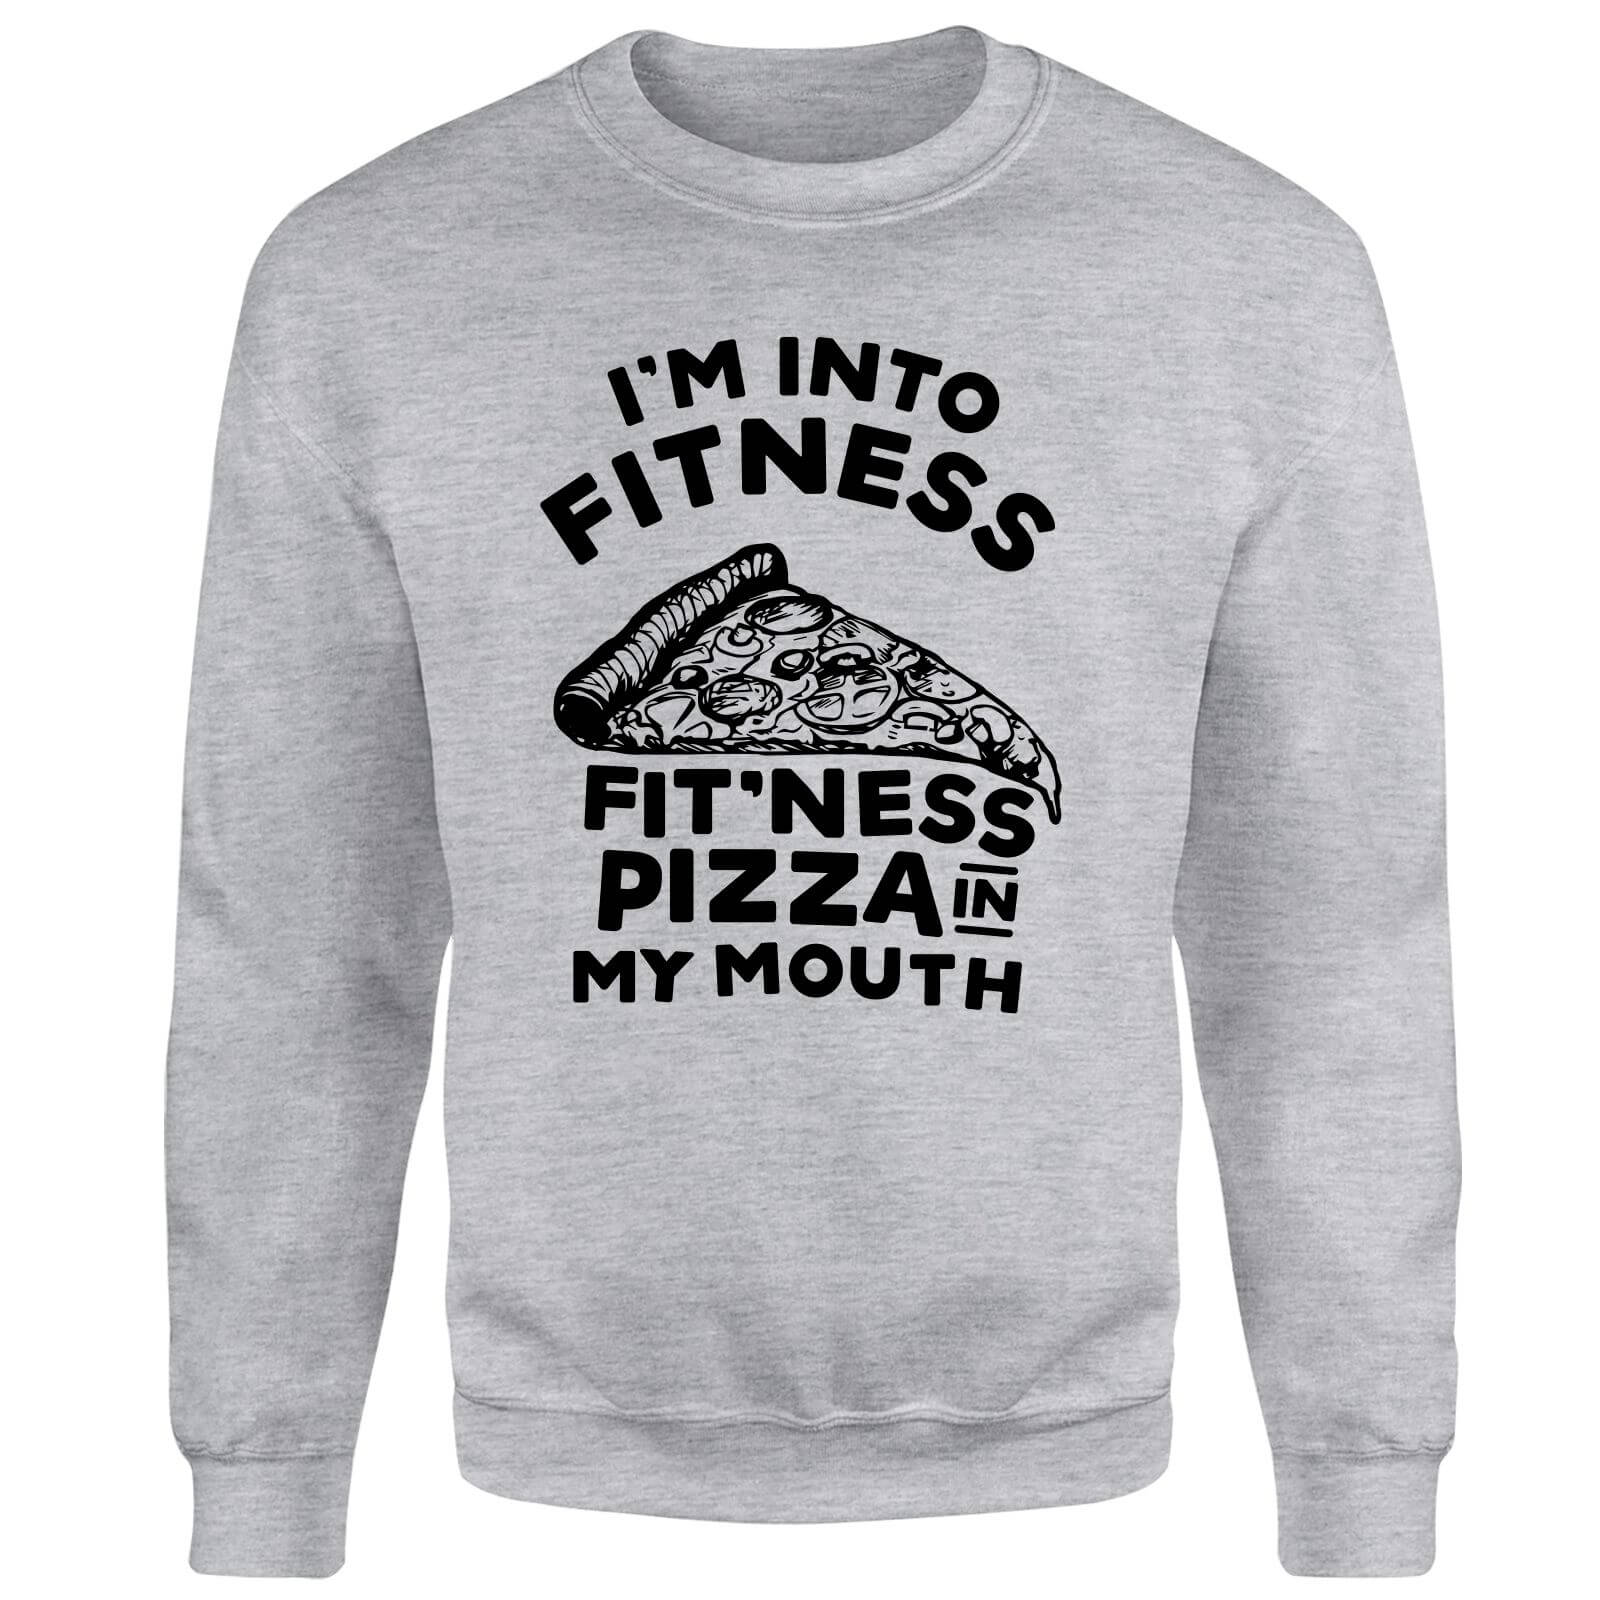 Fitness Pizza Sweatshirt - Grey